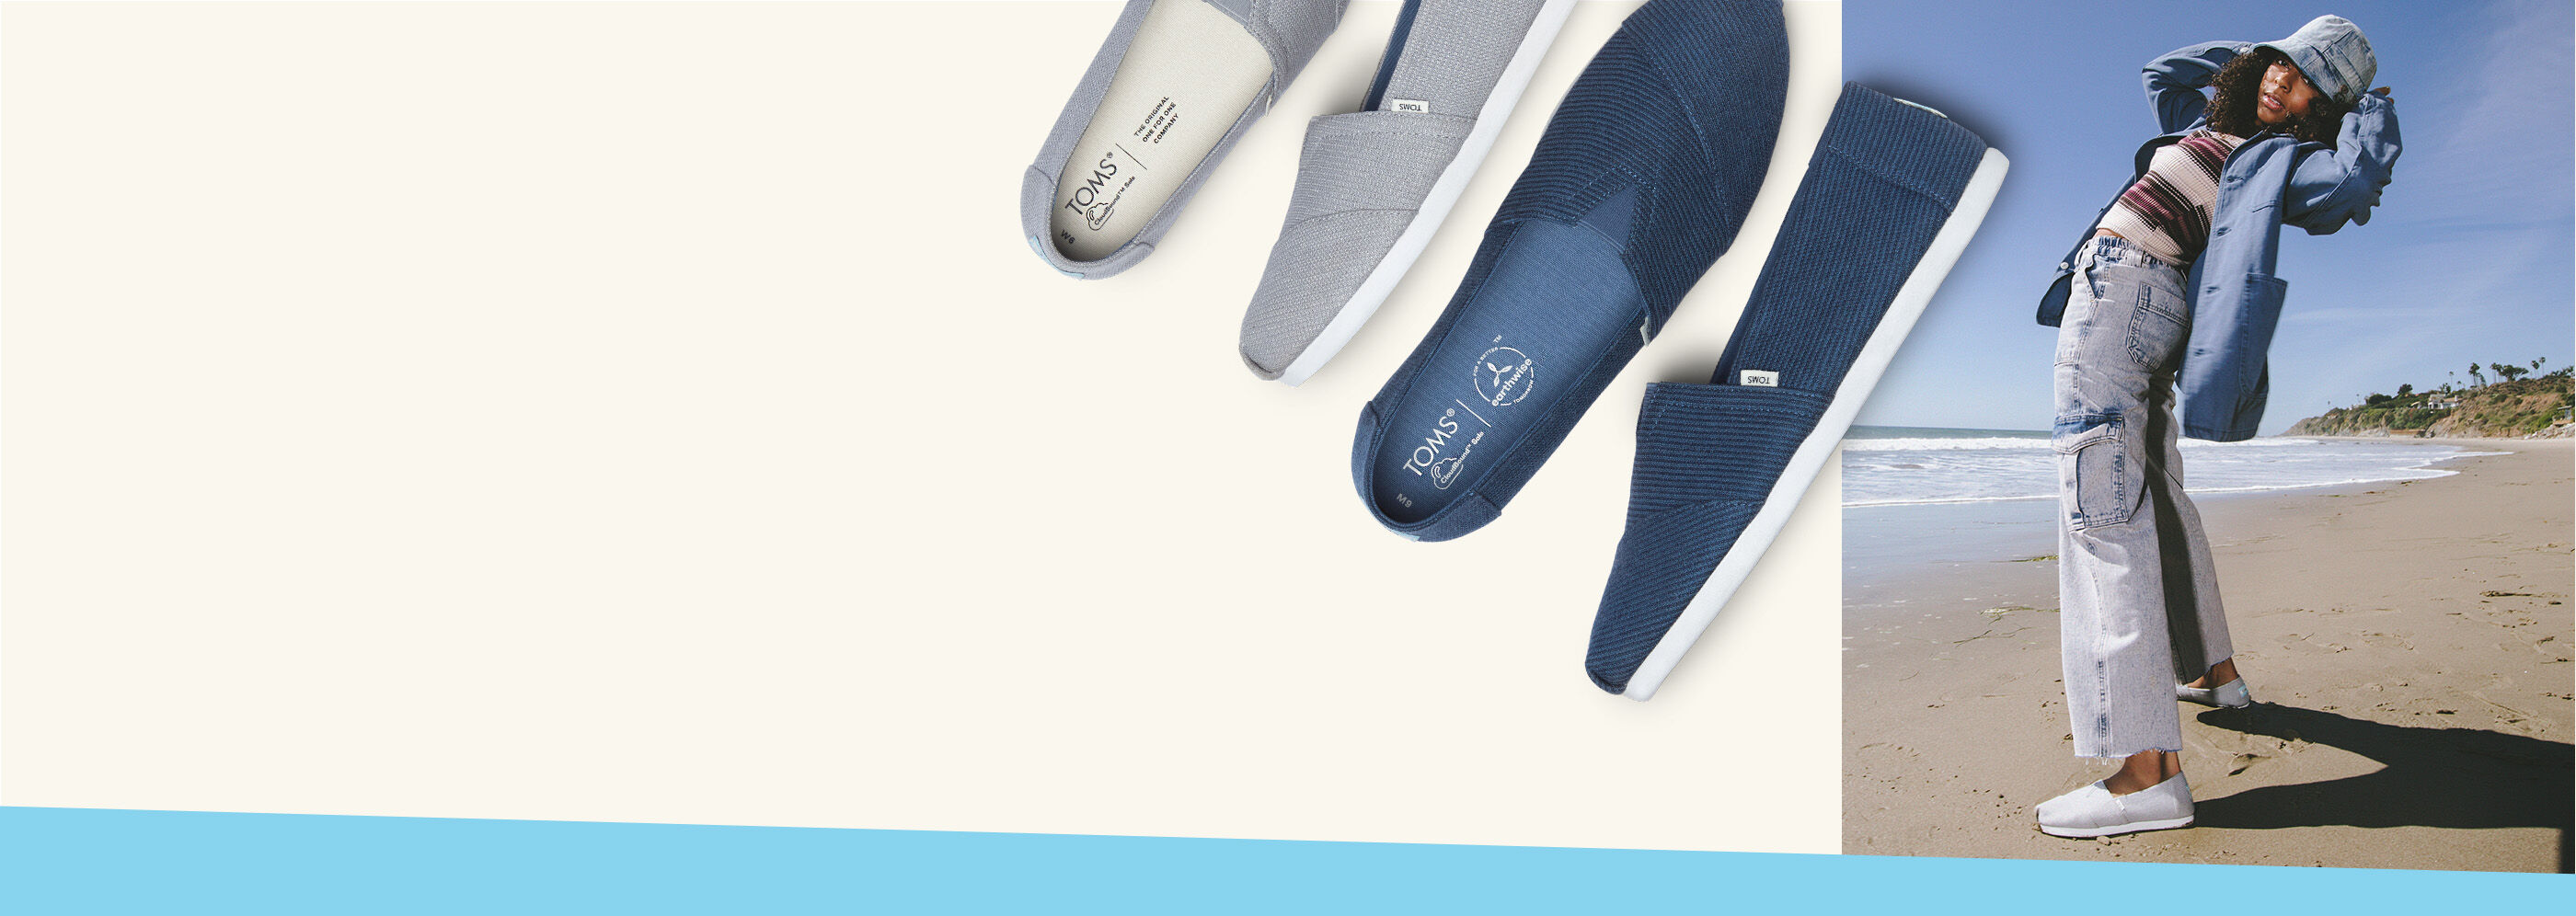 Alpargata REPREVE Our Ocean in slate blue and mid grey shown.